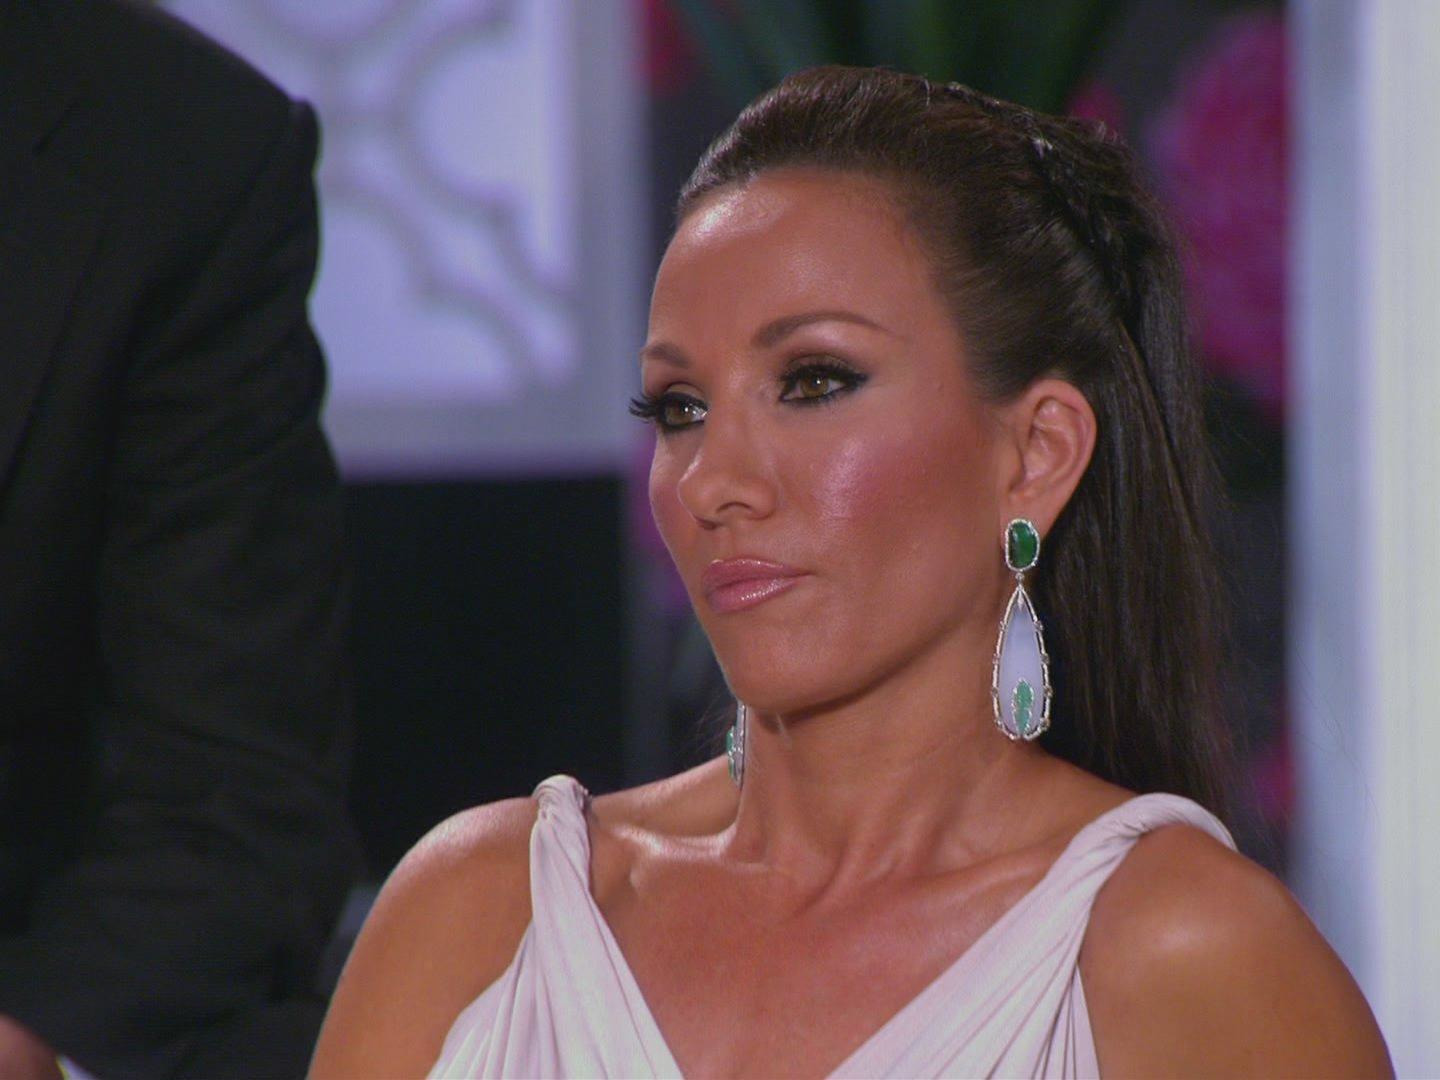 Prime Video: The Real Housewives of New Jersey Season 6